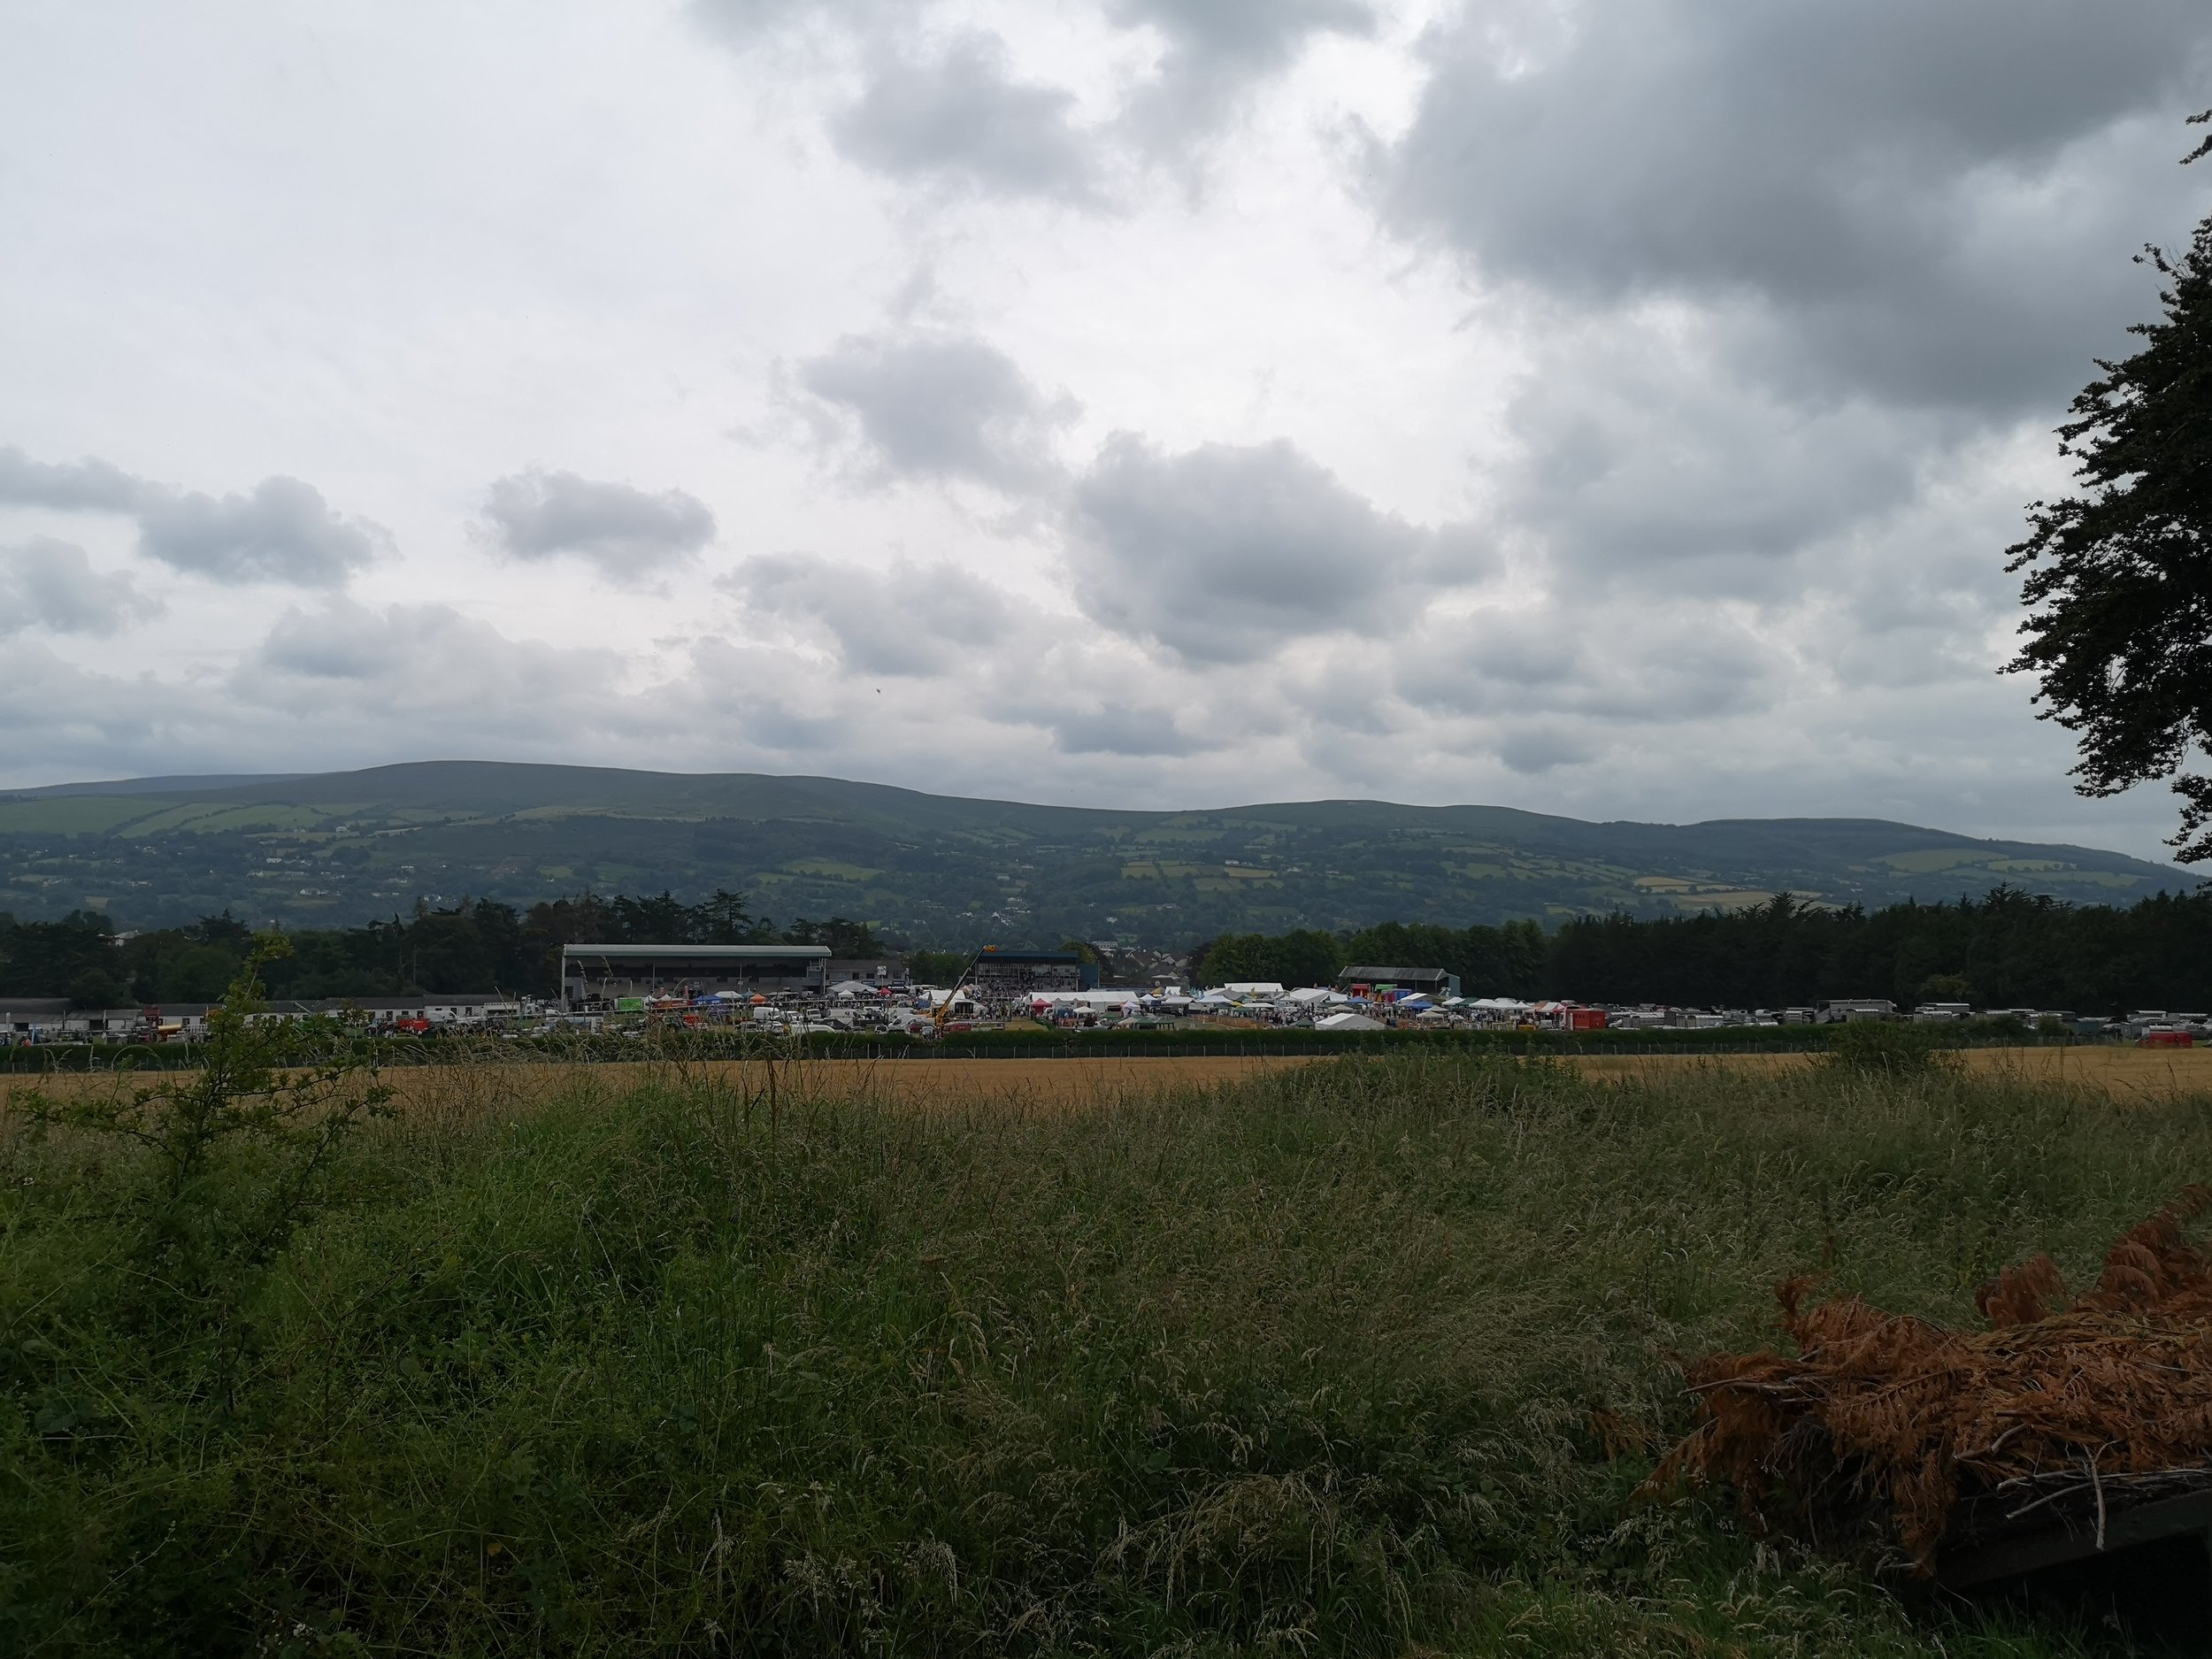 View from the top of Clonmel Racecourse.